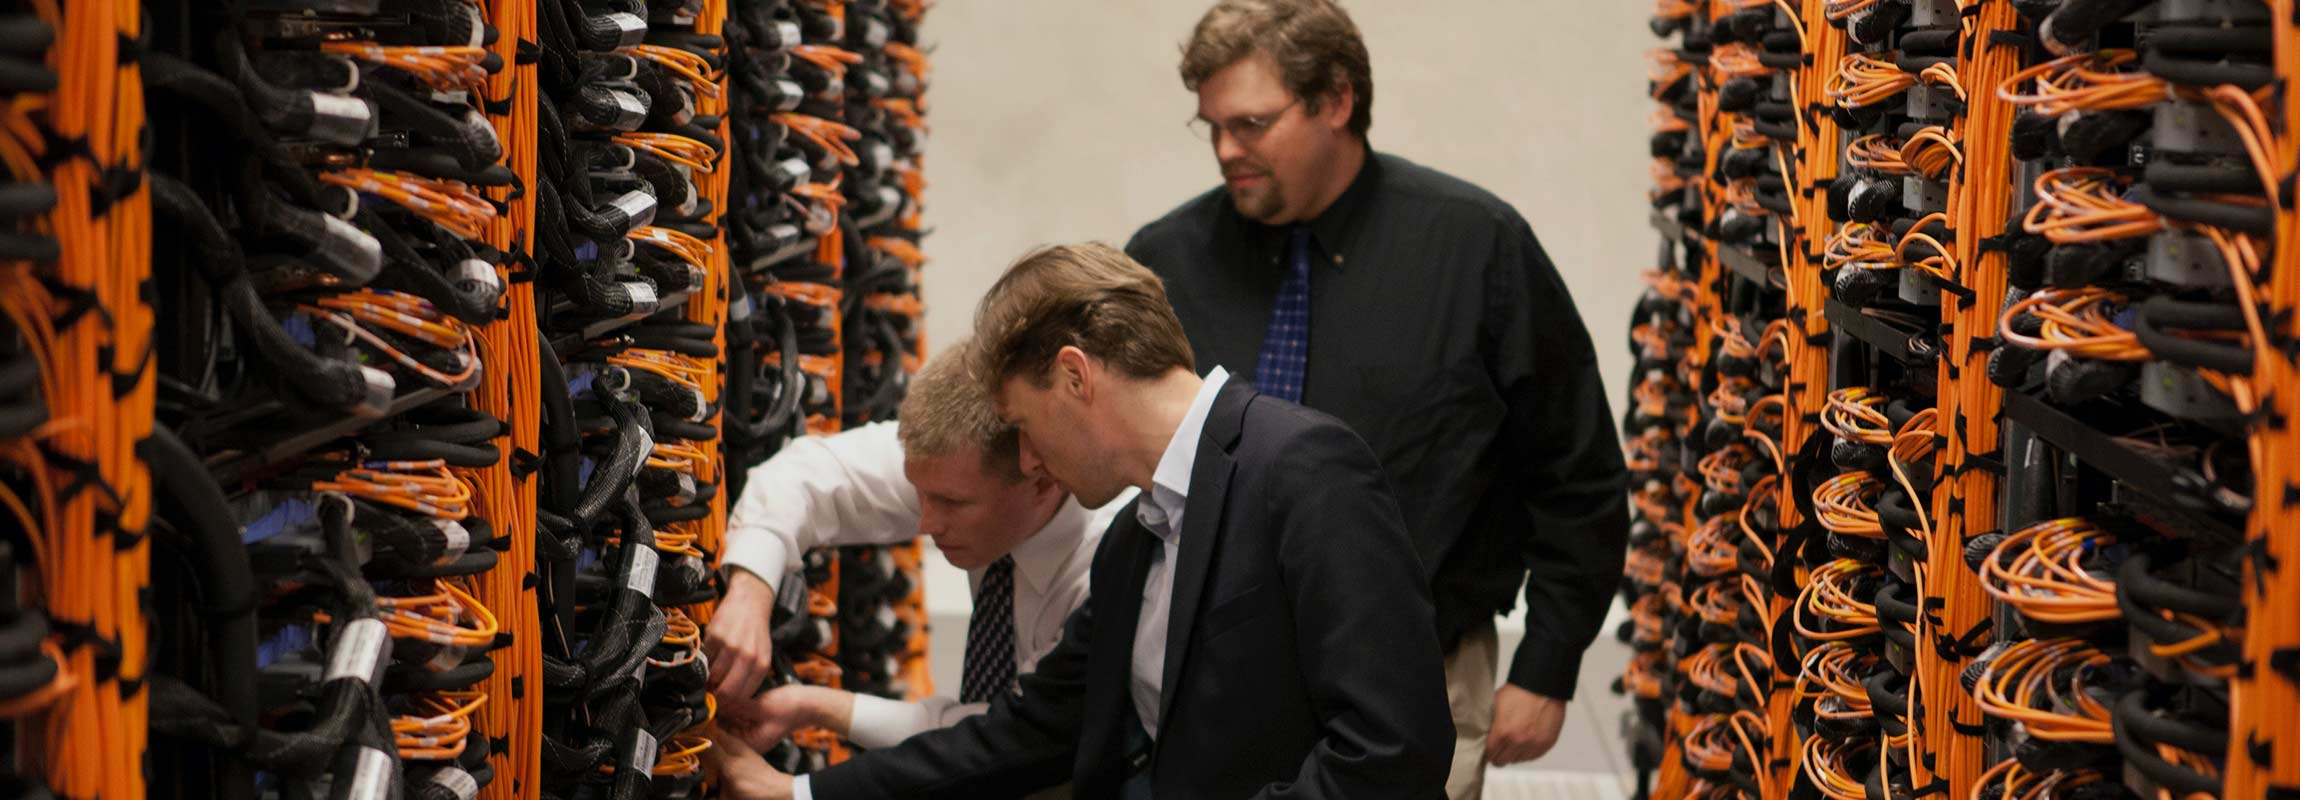 Network Administrator Courses Online